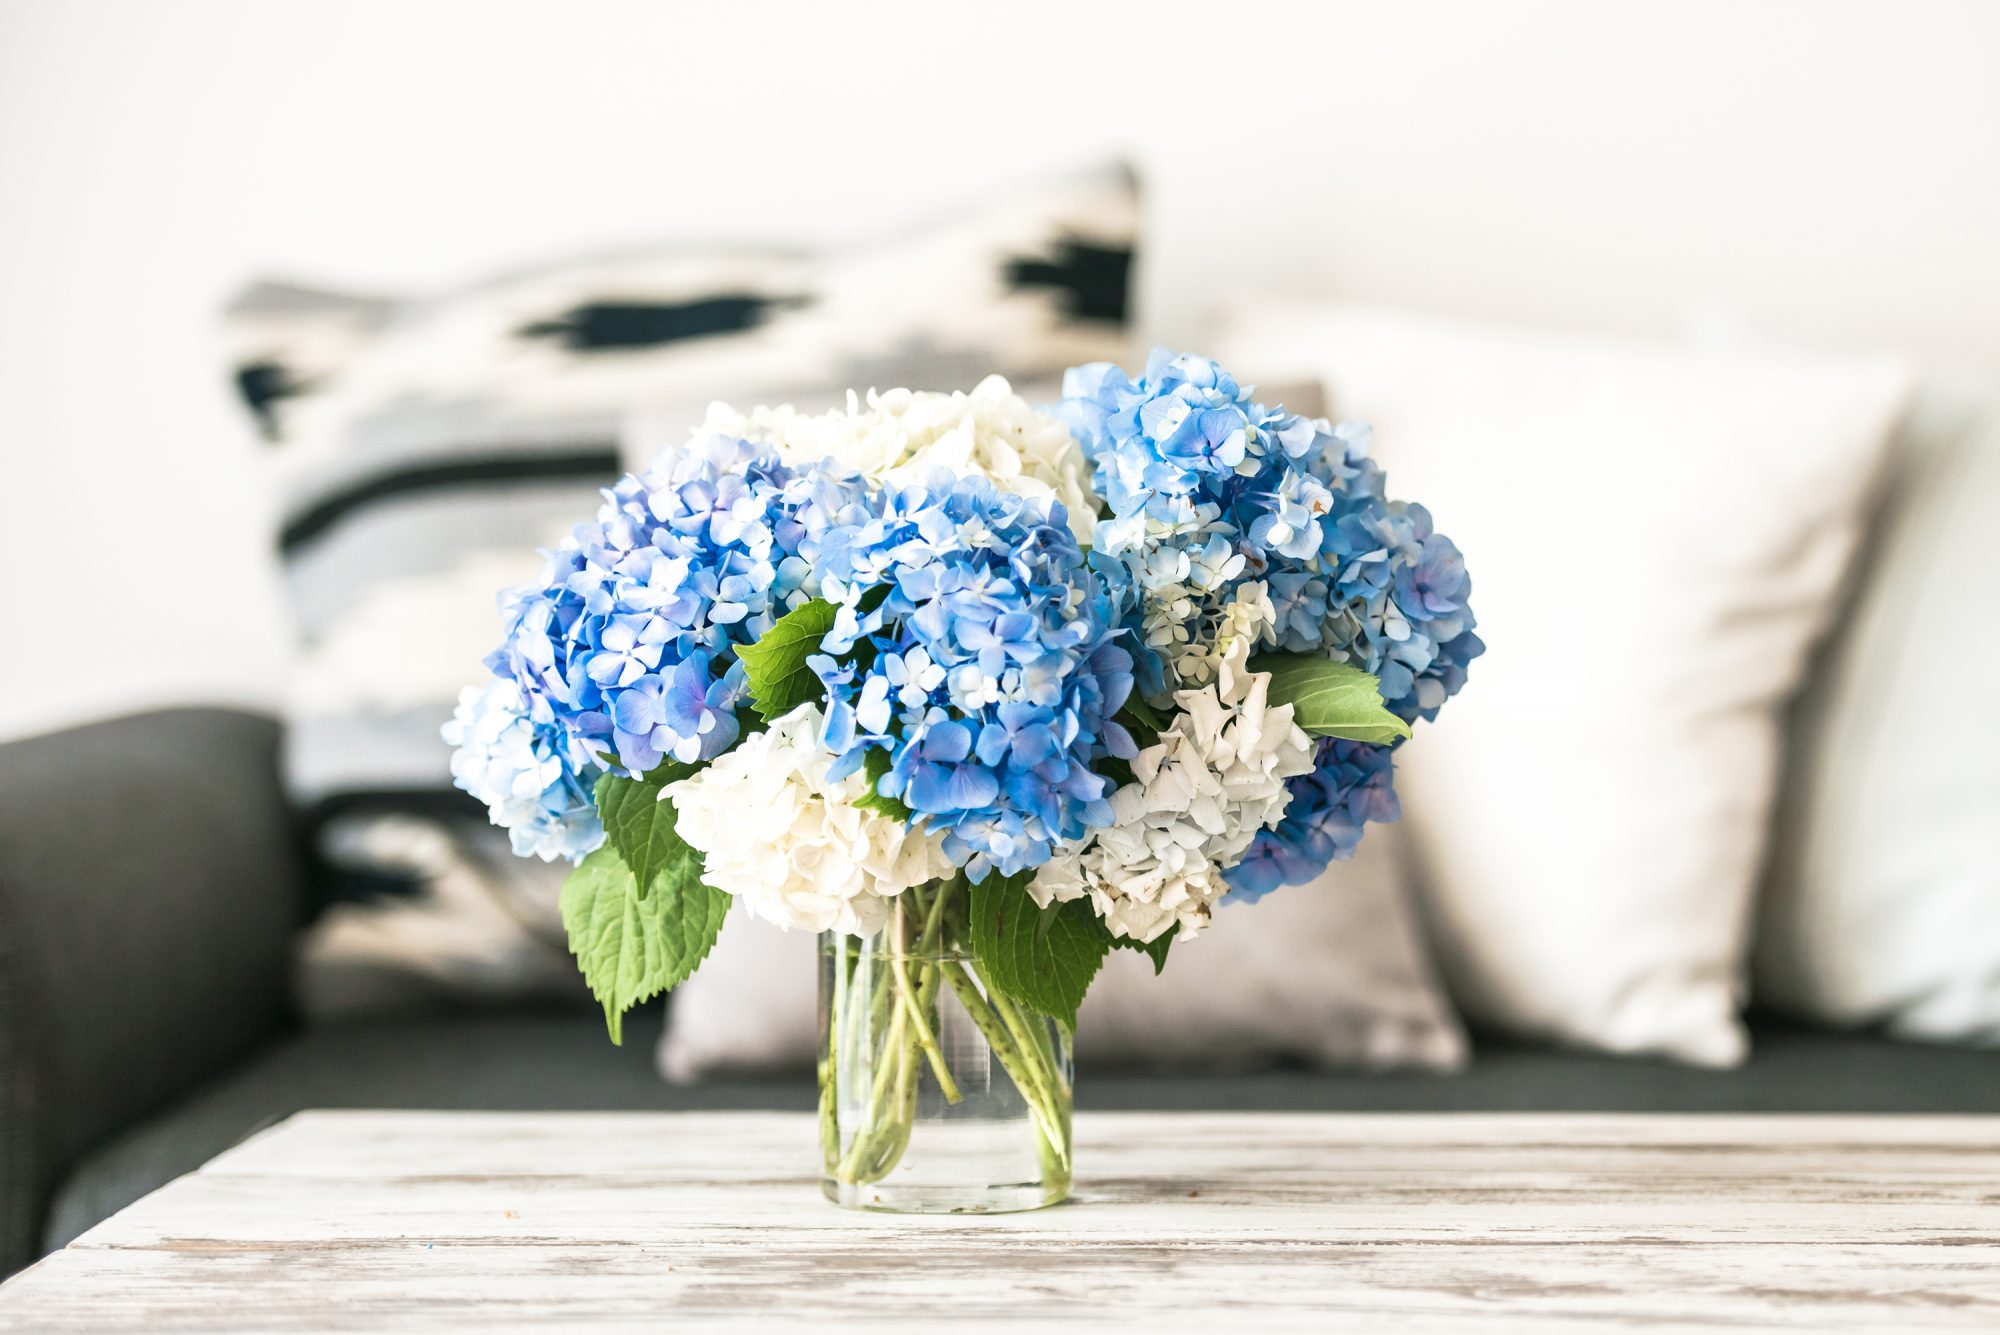 Blue and White Hydrangeas in Vase